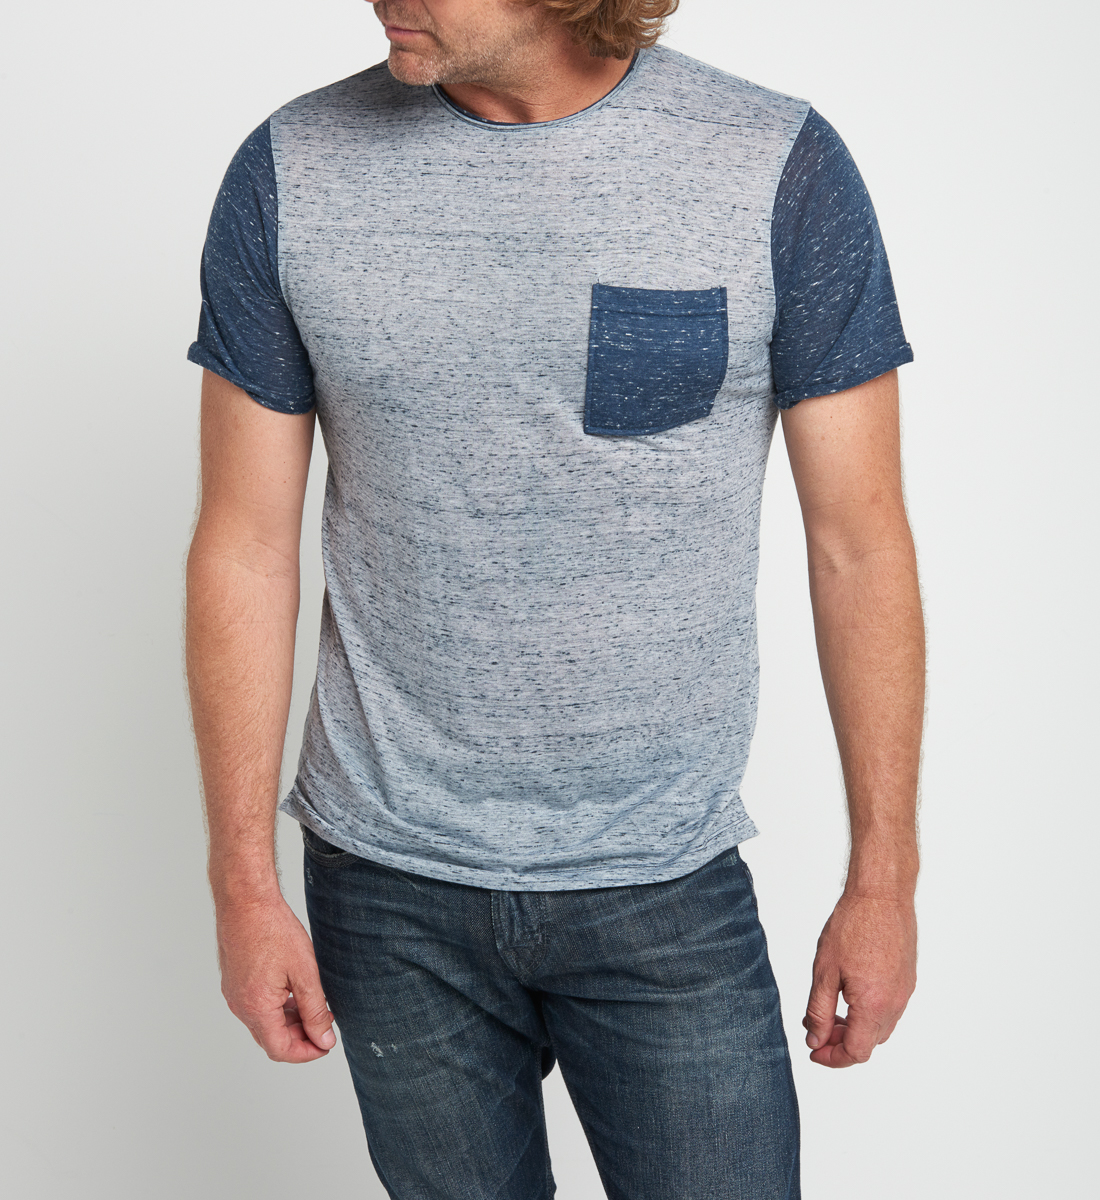 Banyon Short-Sleeve Tee, , hi-res